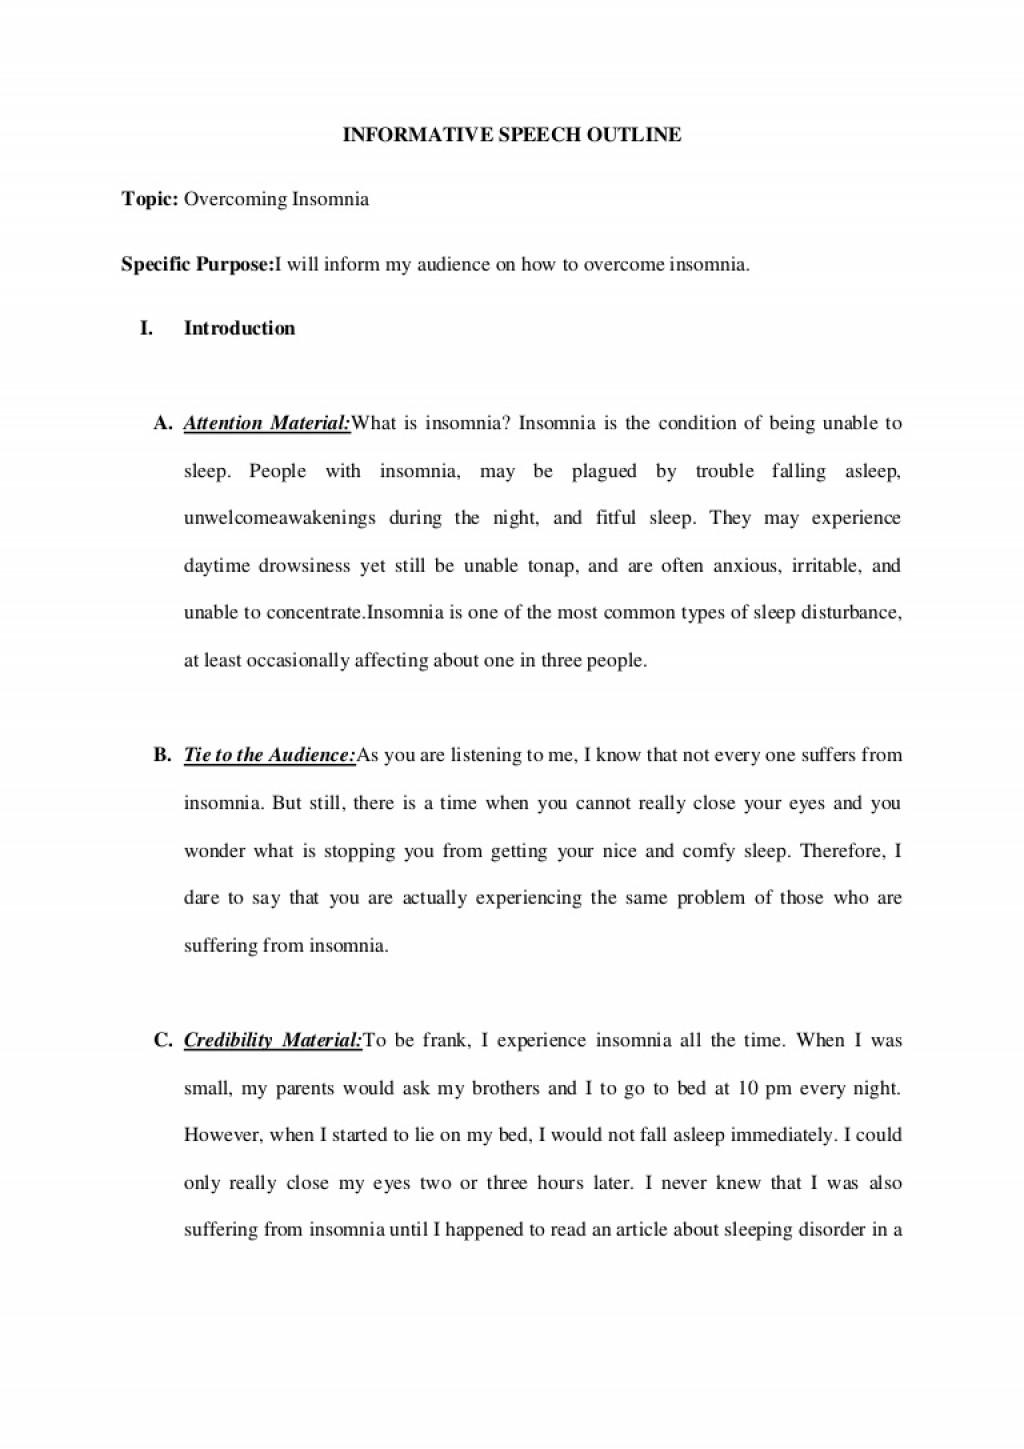 010 Informativespeechoutlineovercomeinsomnia Phpapp02 Thumbnail Essay Example Animal Fearsome Abuse Outline Conclusion Essays Free Large